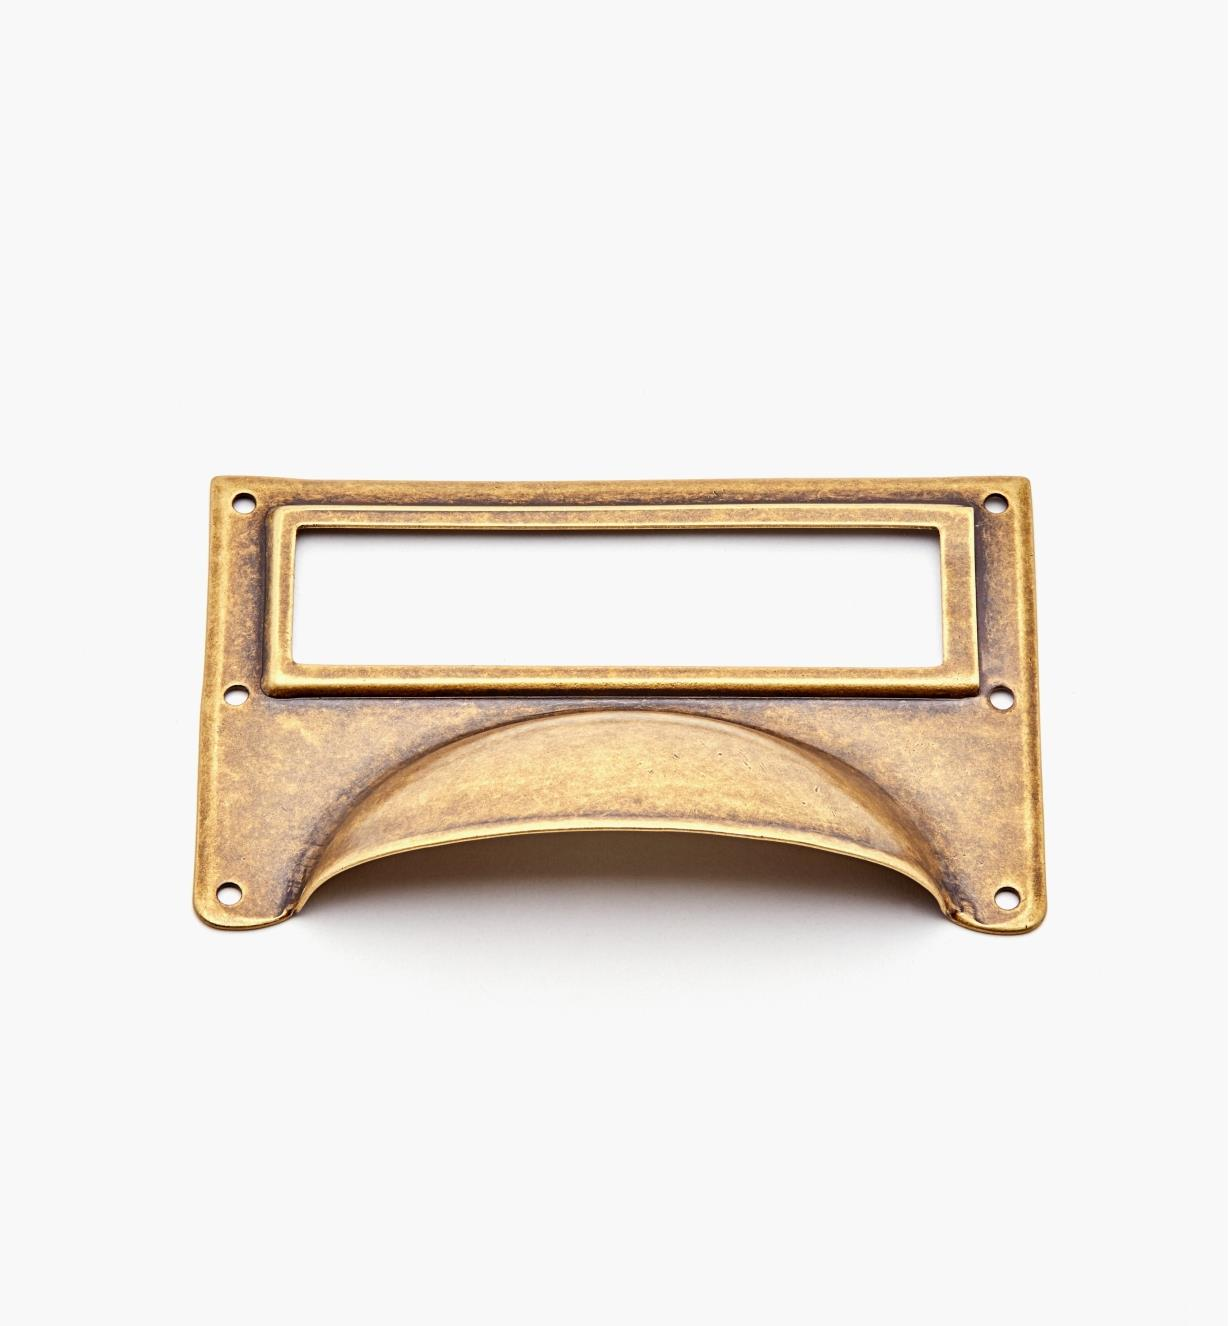 01A5734 - Antique Brass Card Frame Pull